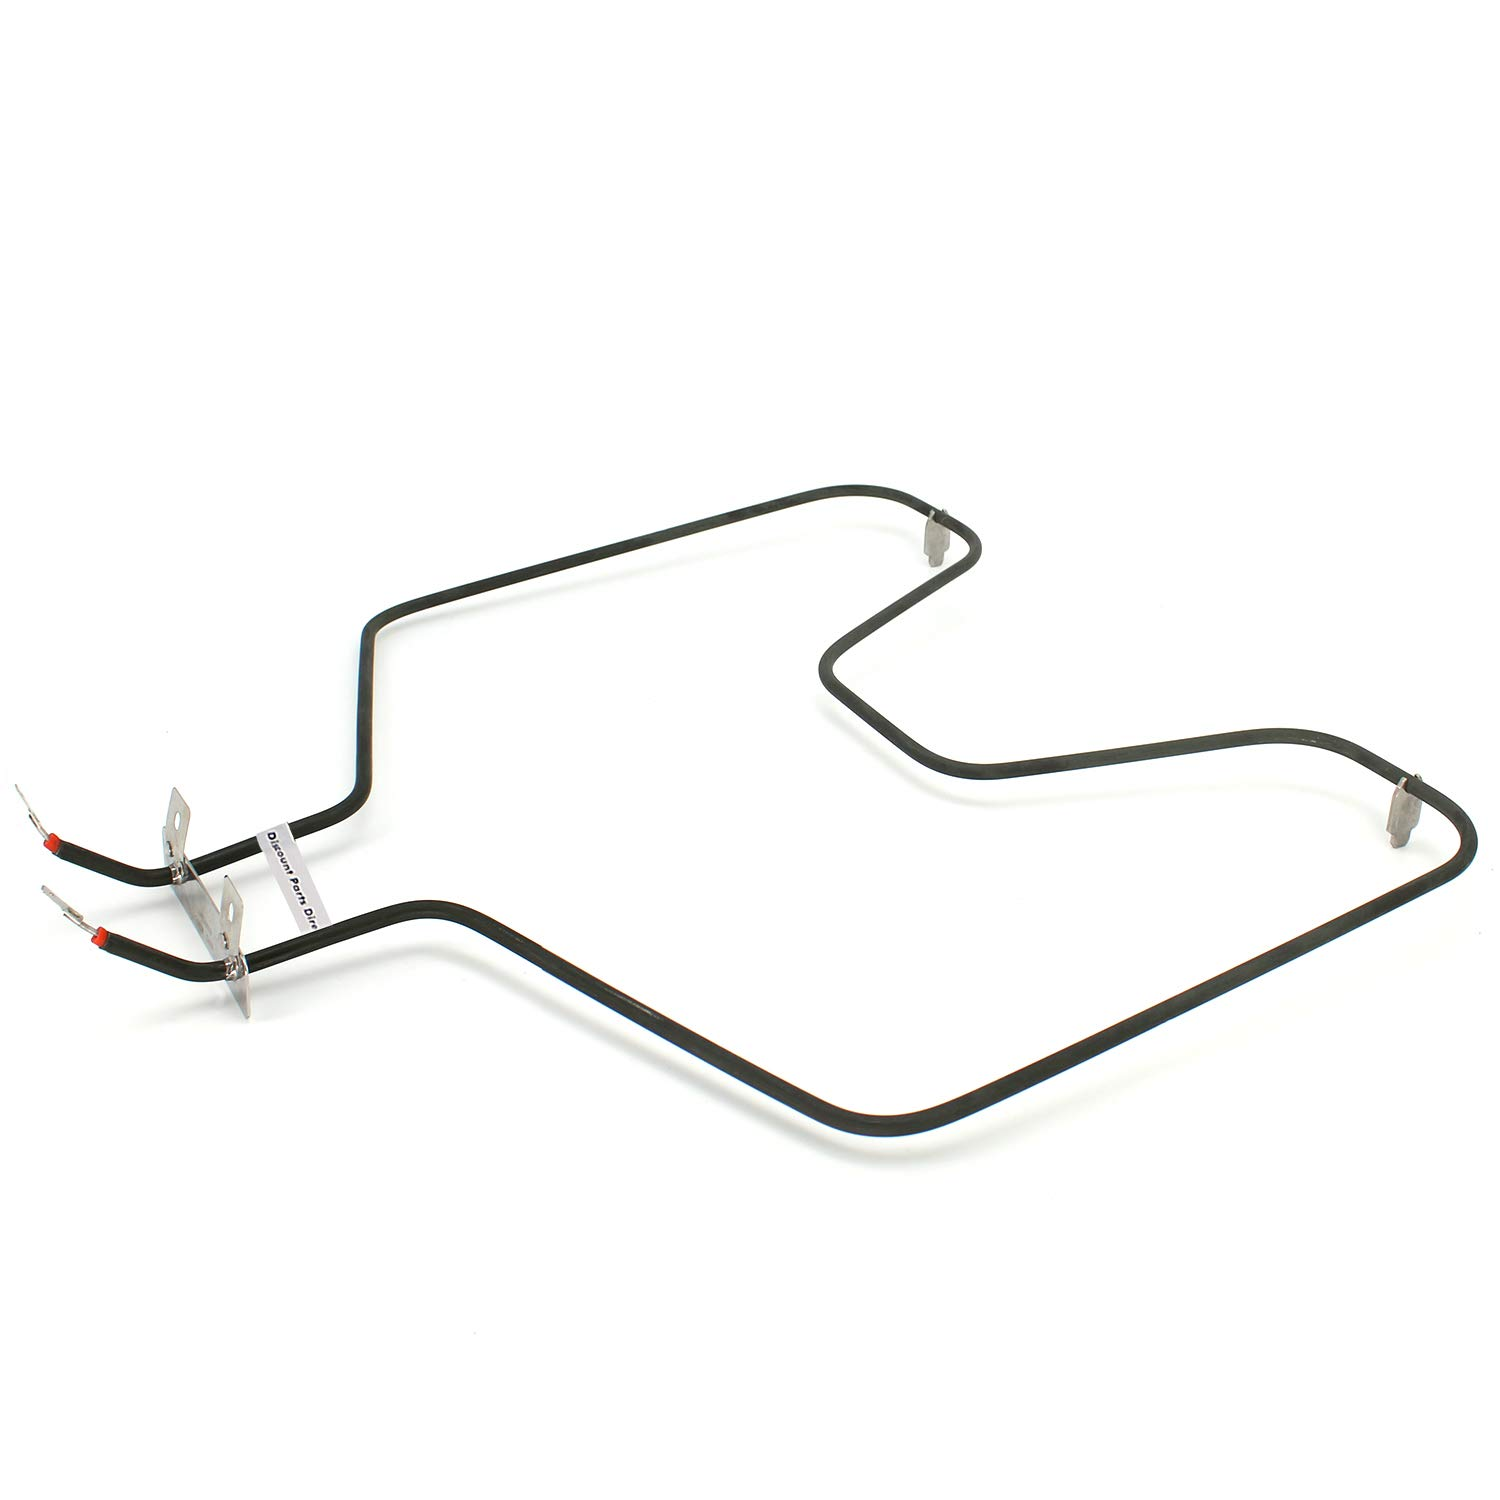 WB44T10010 Range Oven Stove Bake Heating Element Bottom Element Unit Assembly for GE Hotpoint, Replaces WB44T10010, AP2030996, 770549, AH249285, EA249285, PS249285